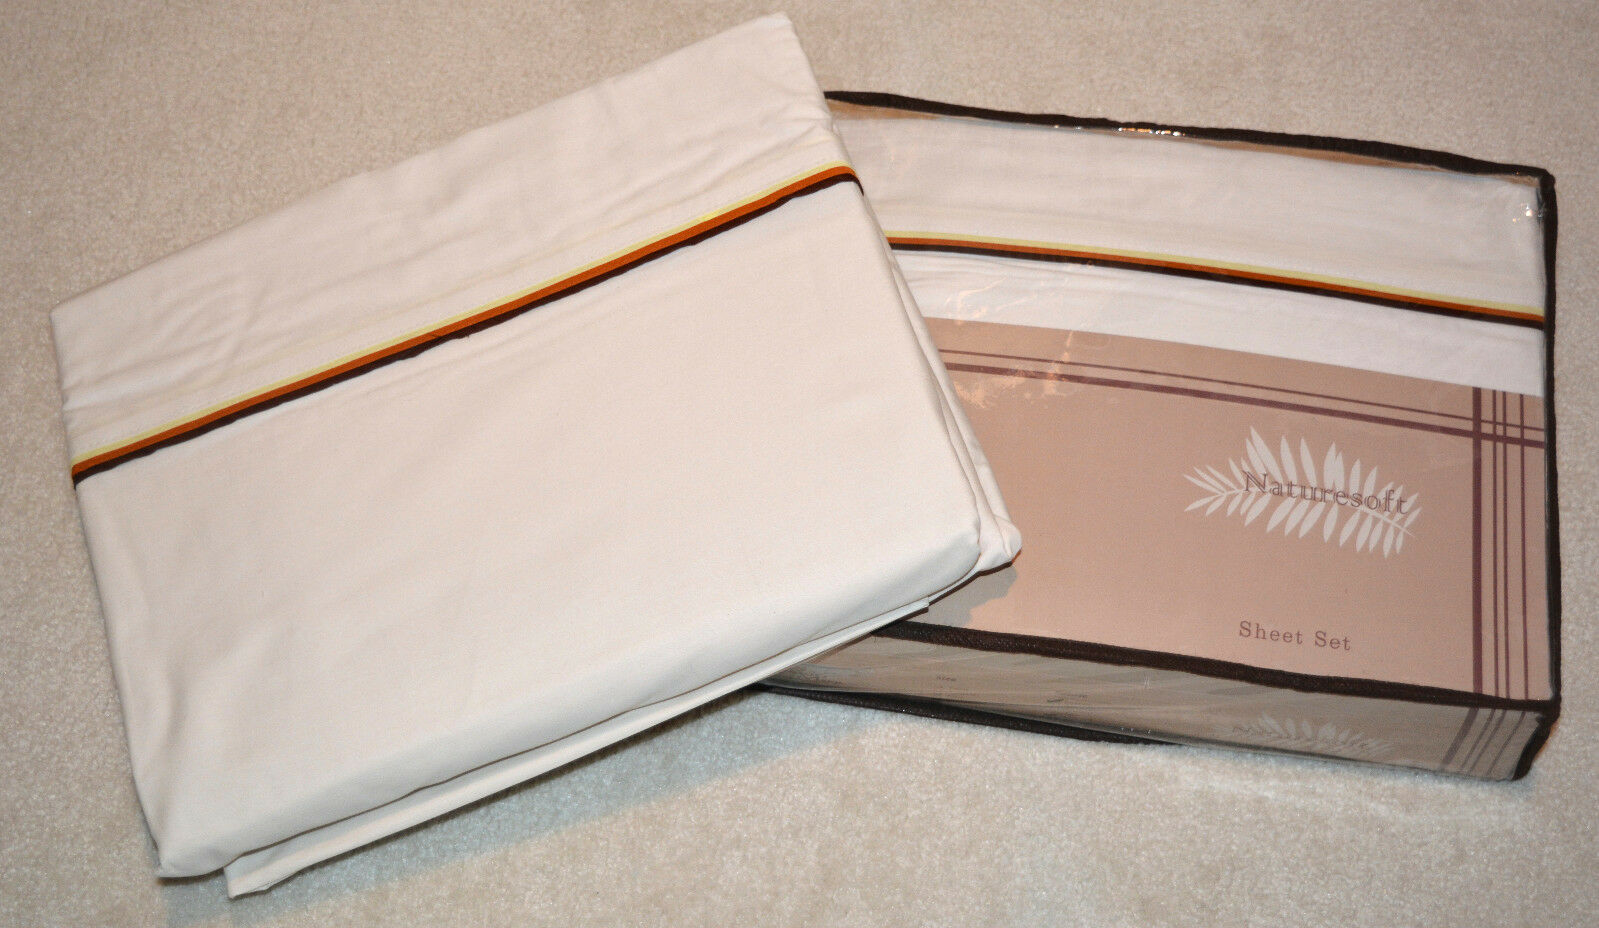 100% Organic Cotton T200 Sateen King Valentines Sheet Set with 3 ColGoldt Piping